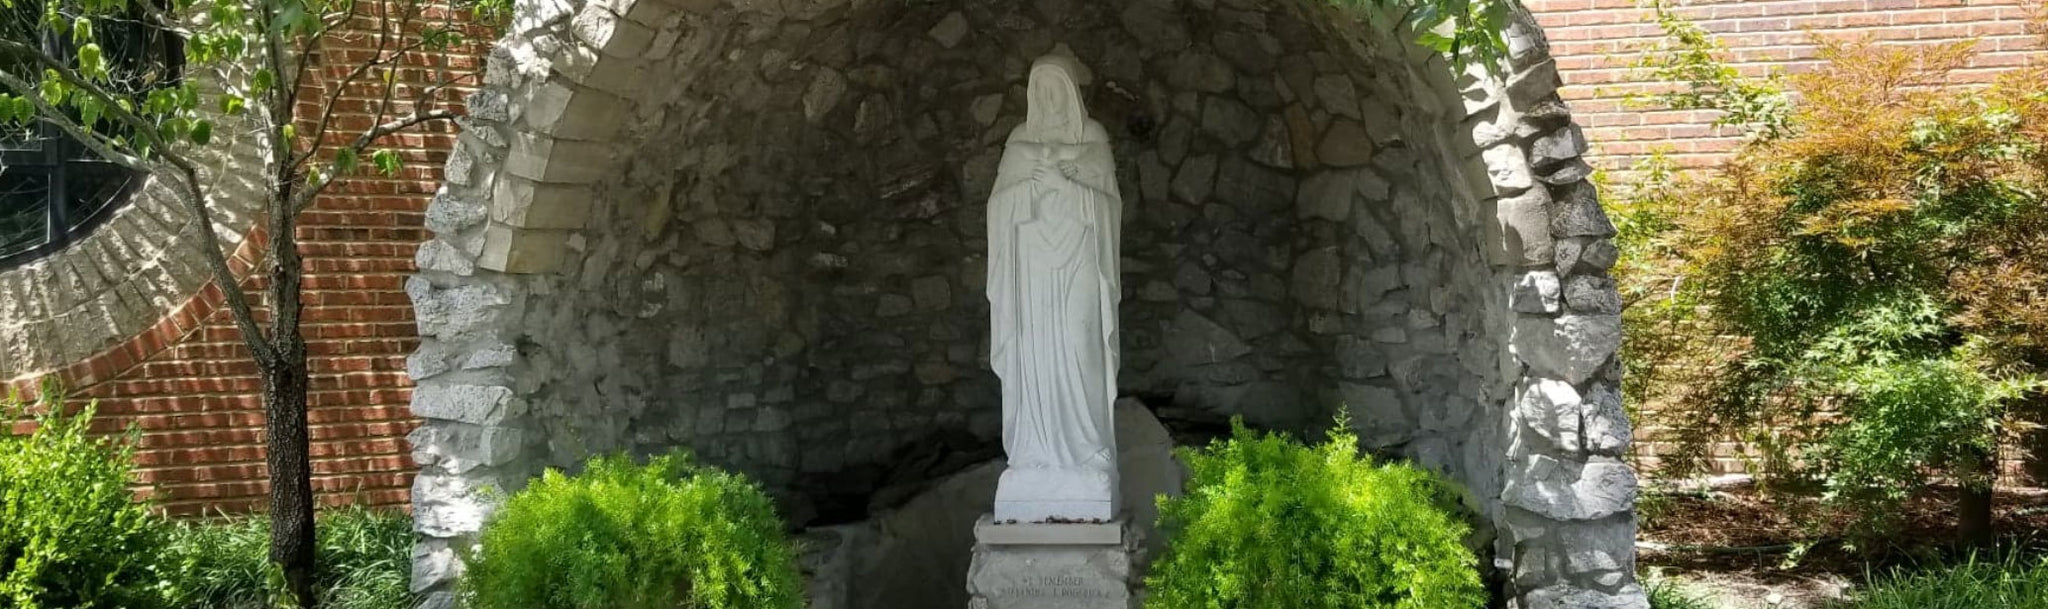 St. Patrick's Parish, Wentzville, Mo - The Grotto Grill, Flinthill, Wentzville MO